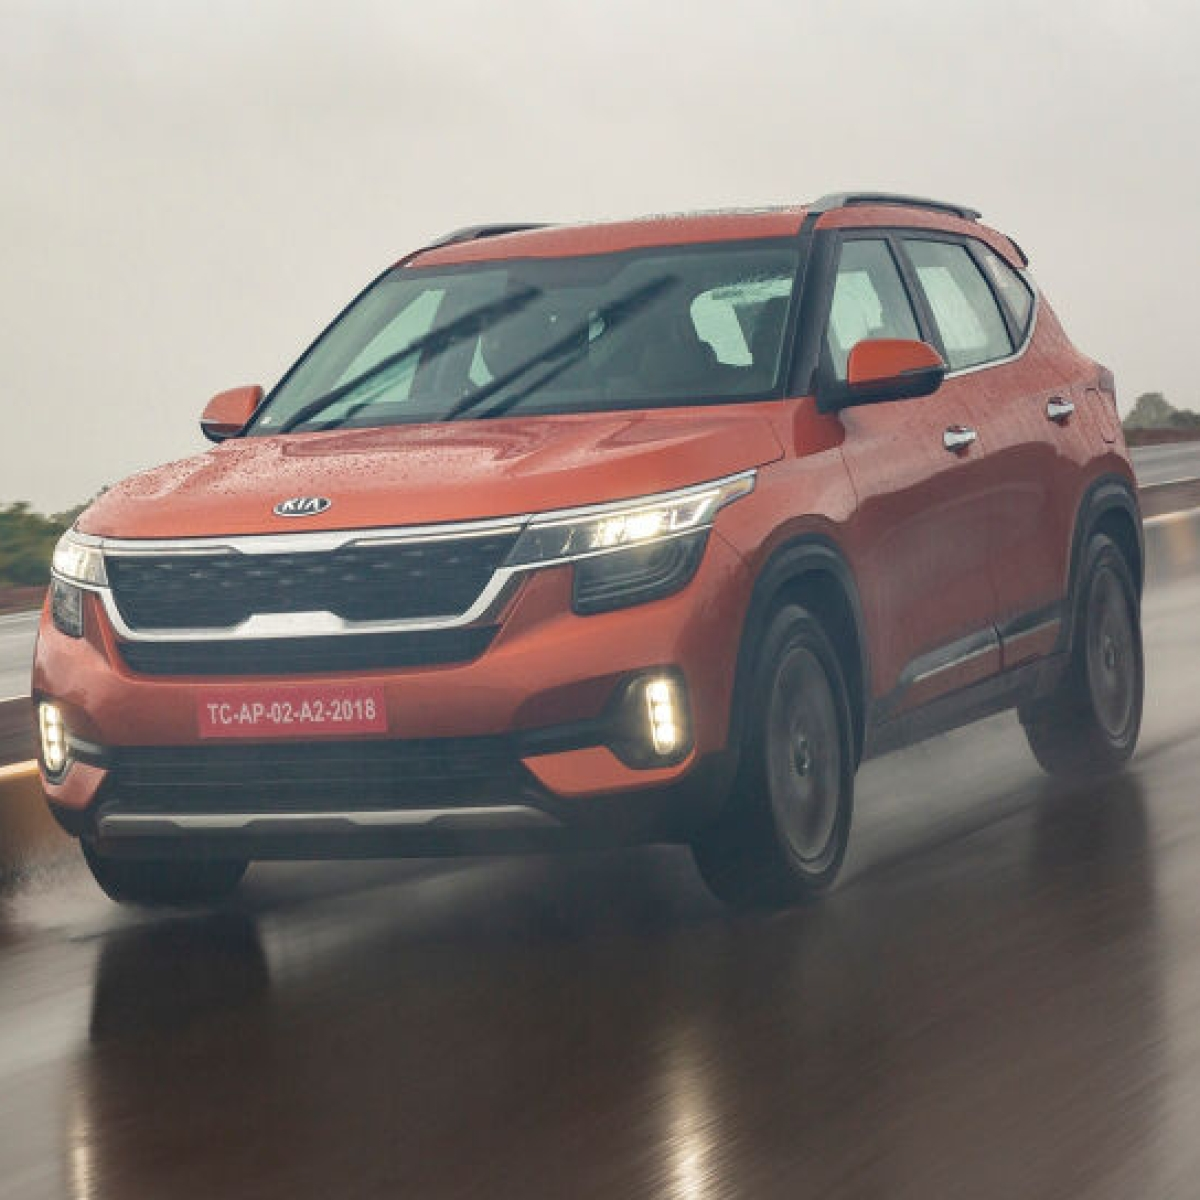 Kia Seltos launch today: Price, variants, features and everything you need to know